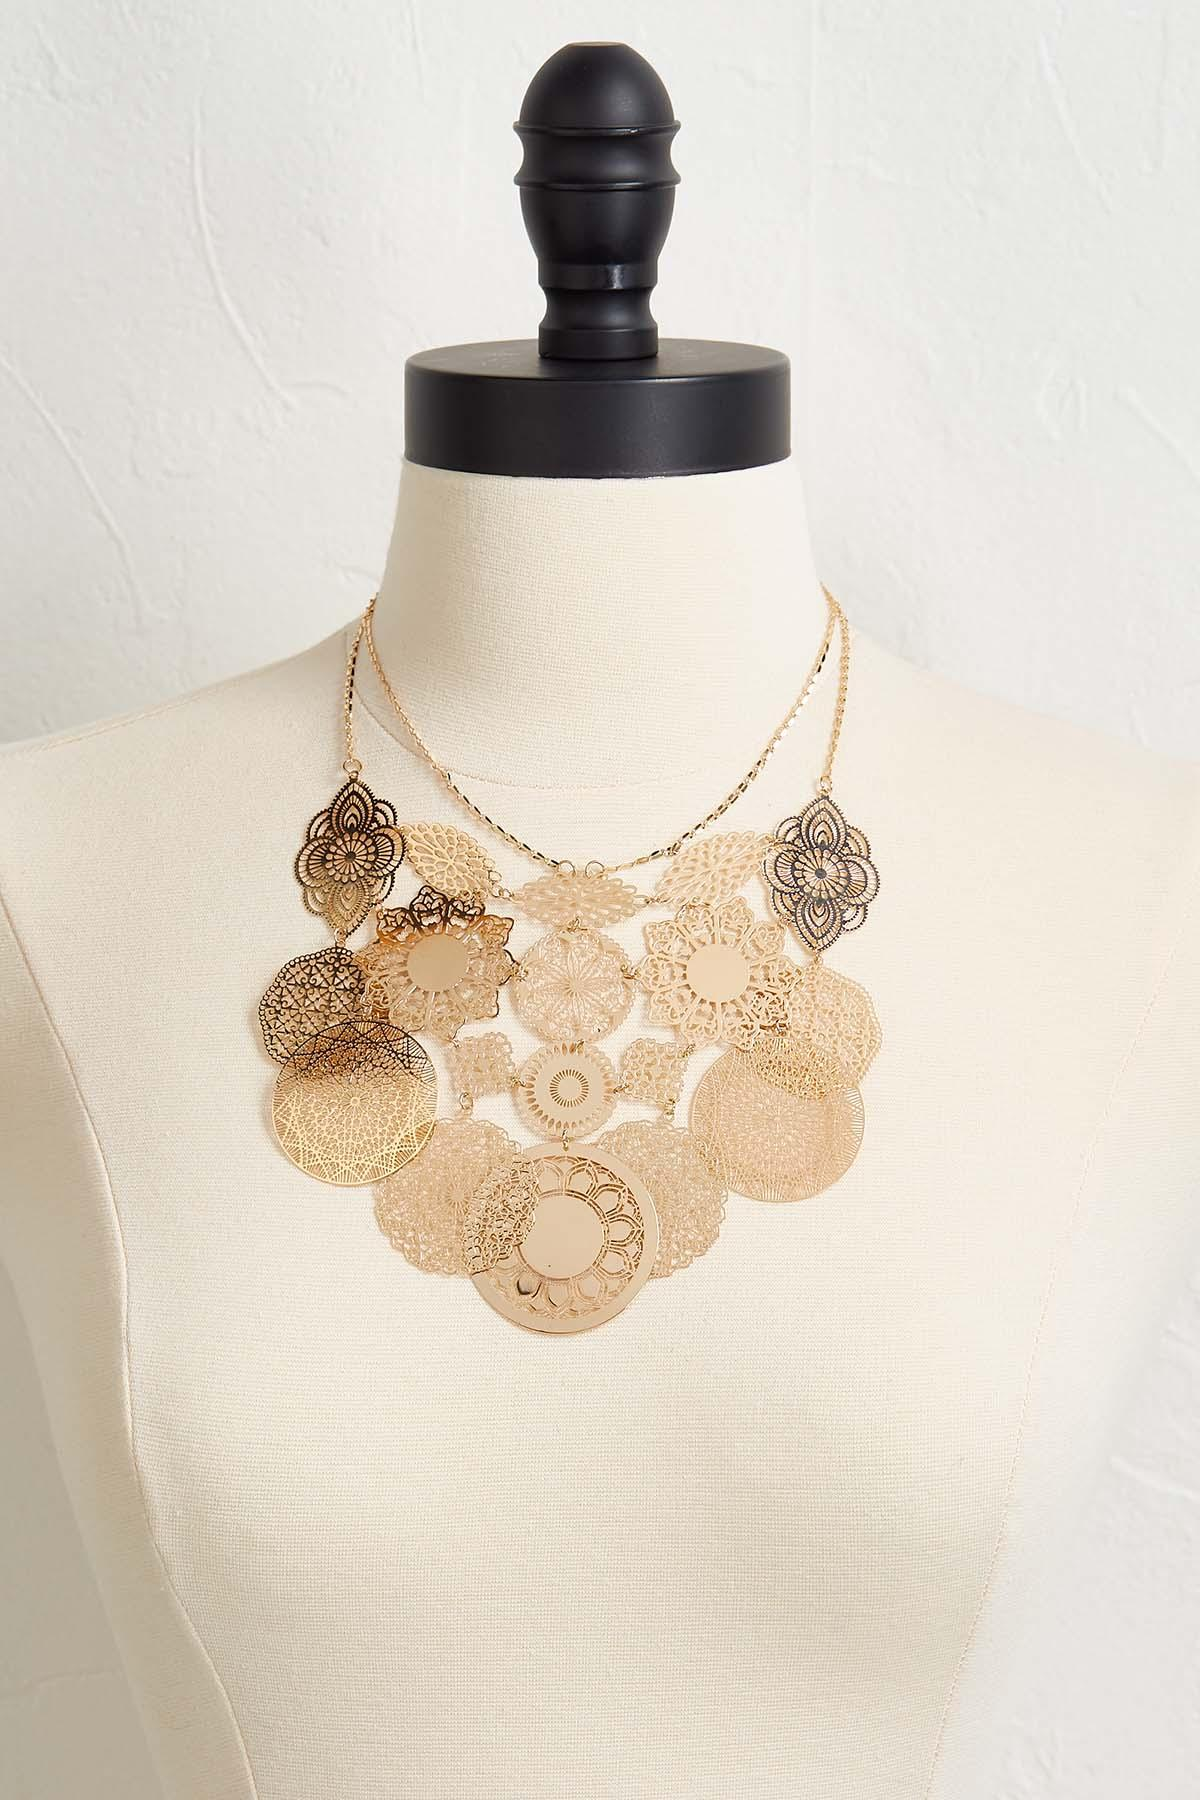 Filigree Statement Bib Necklace